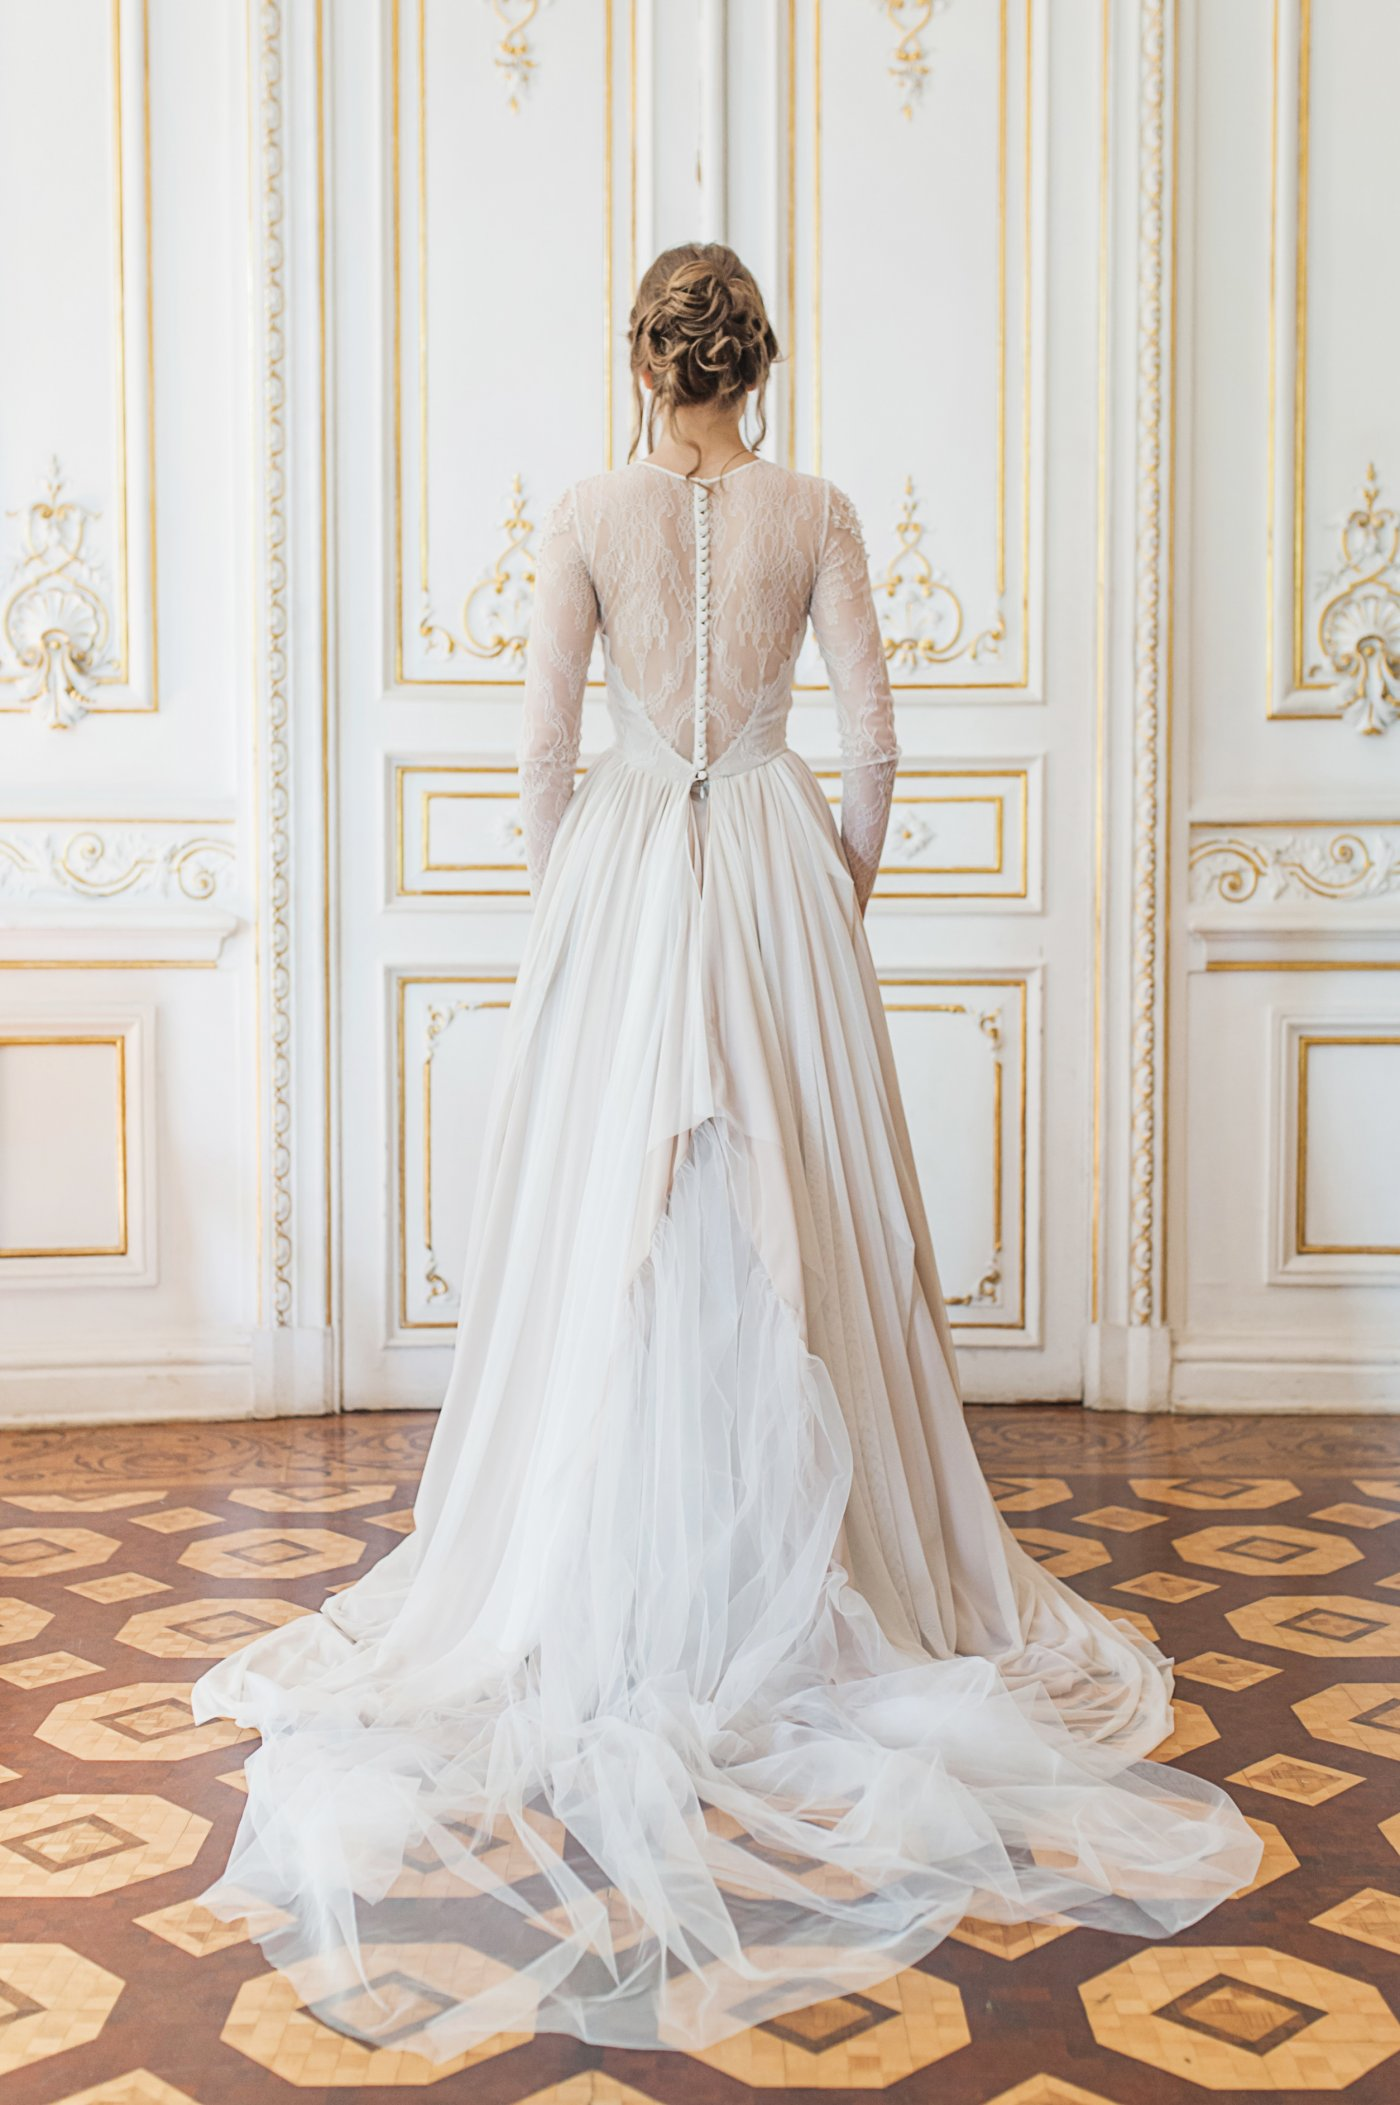 Nude wedding gown with tiered skirt and crystal embroidery | Cathy Telle